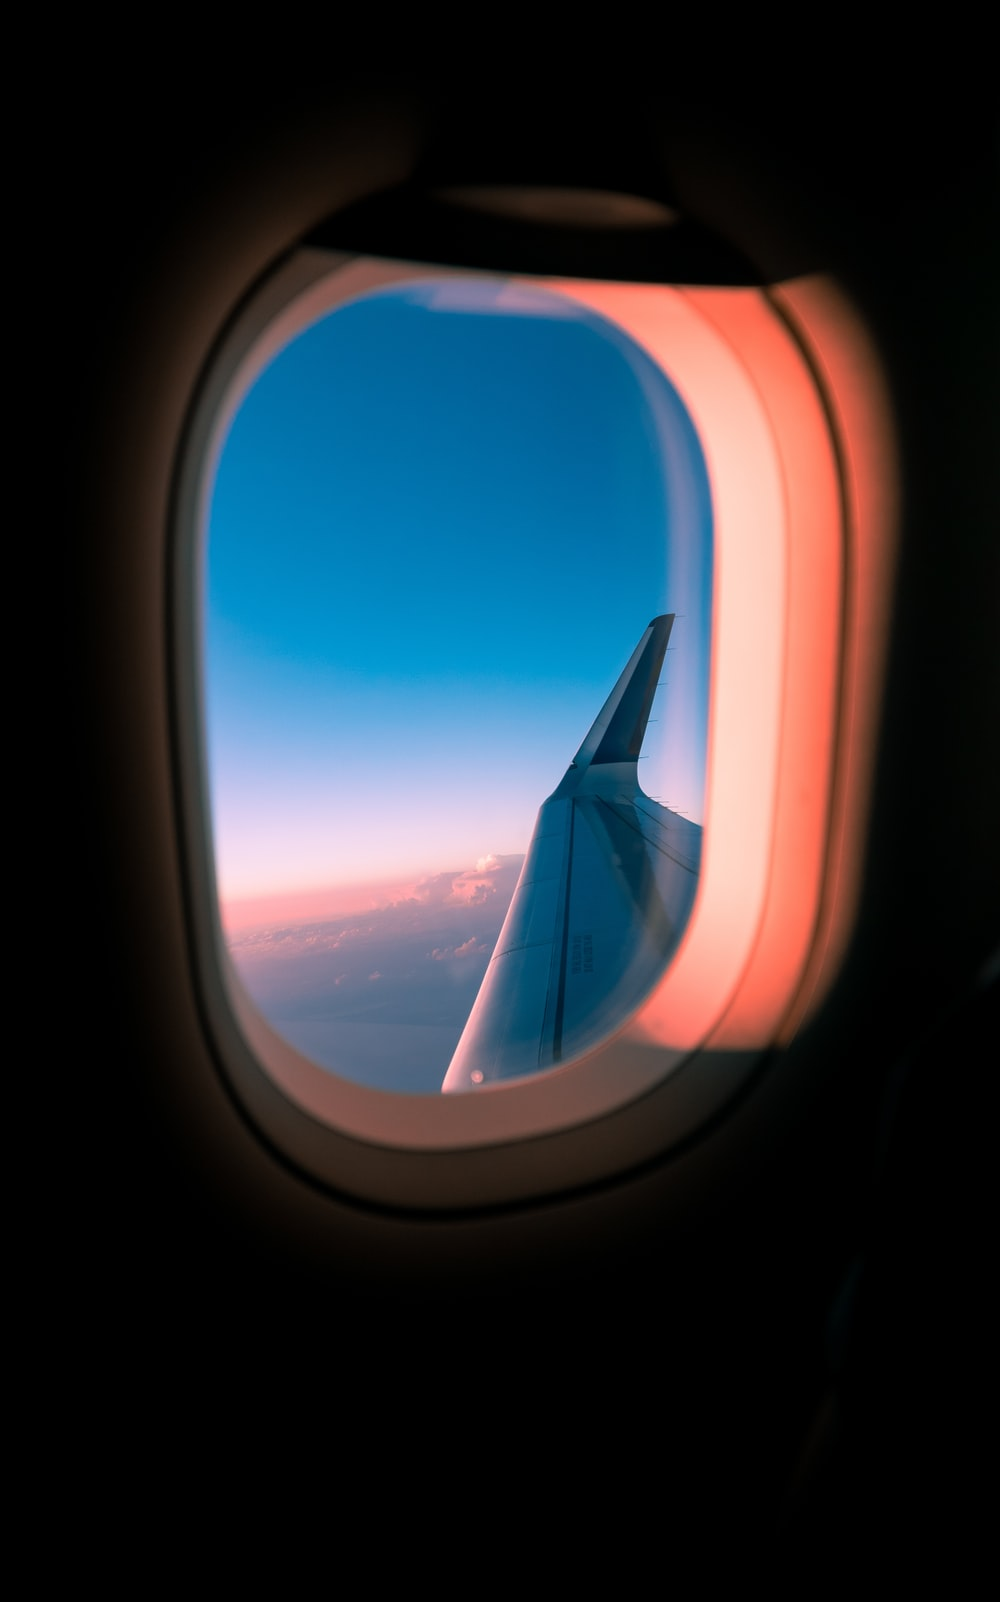 closeup photo of airplane wing